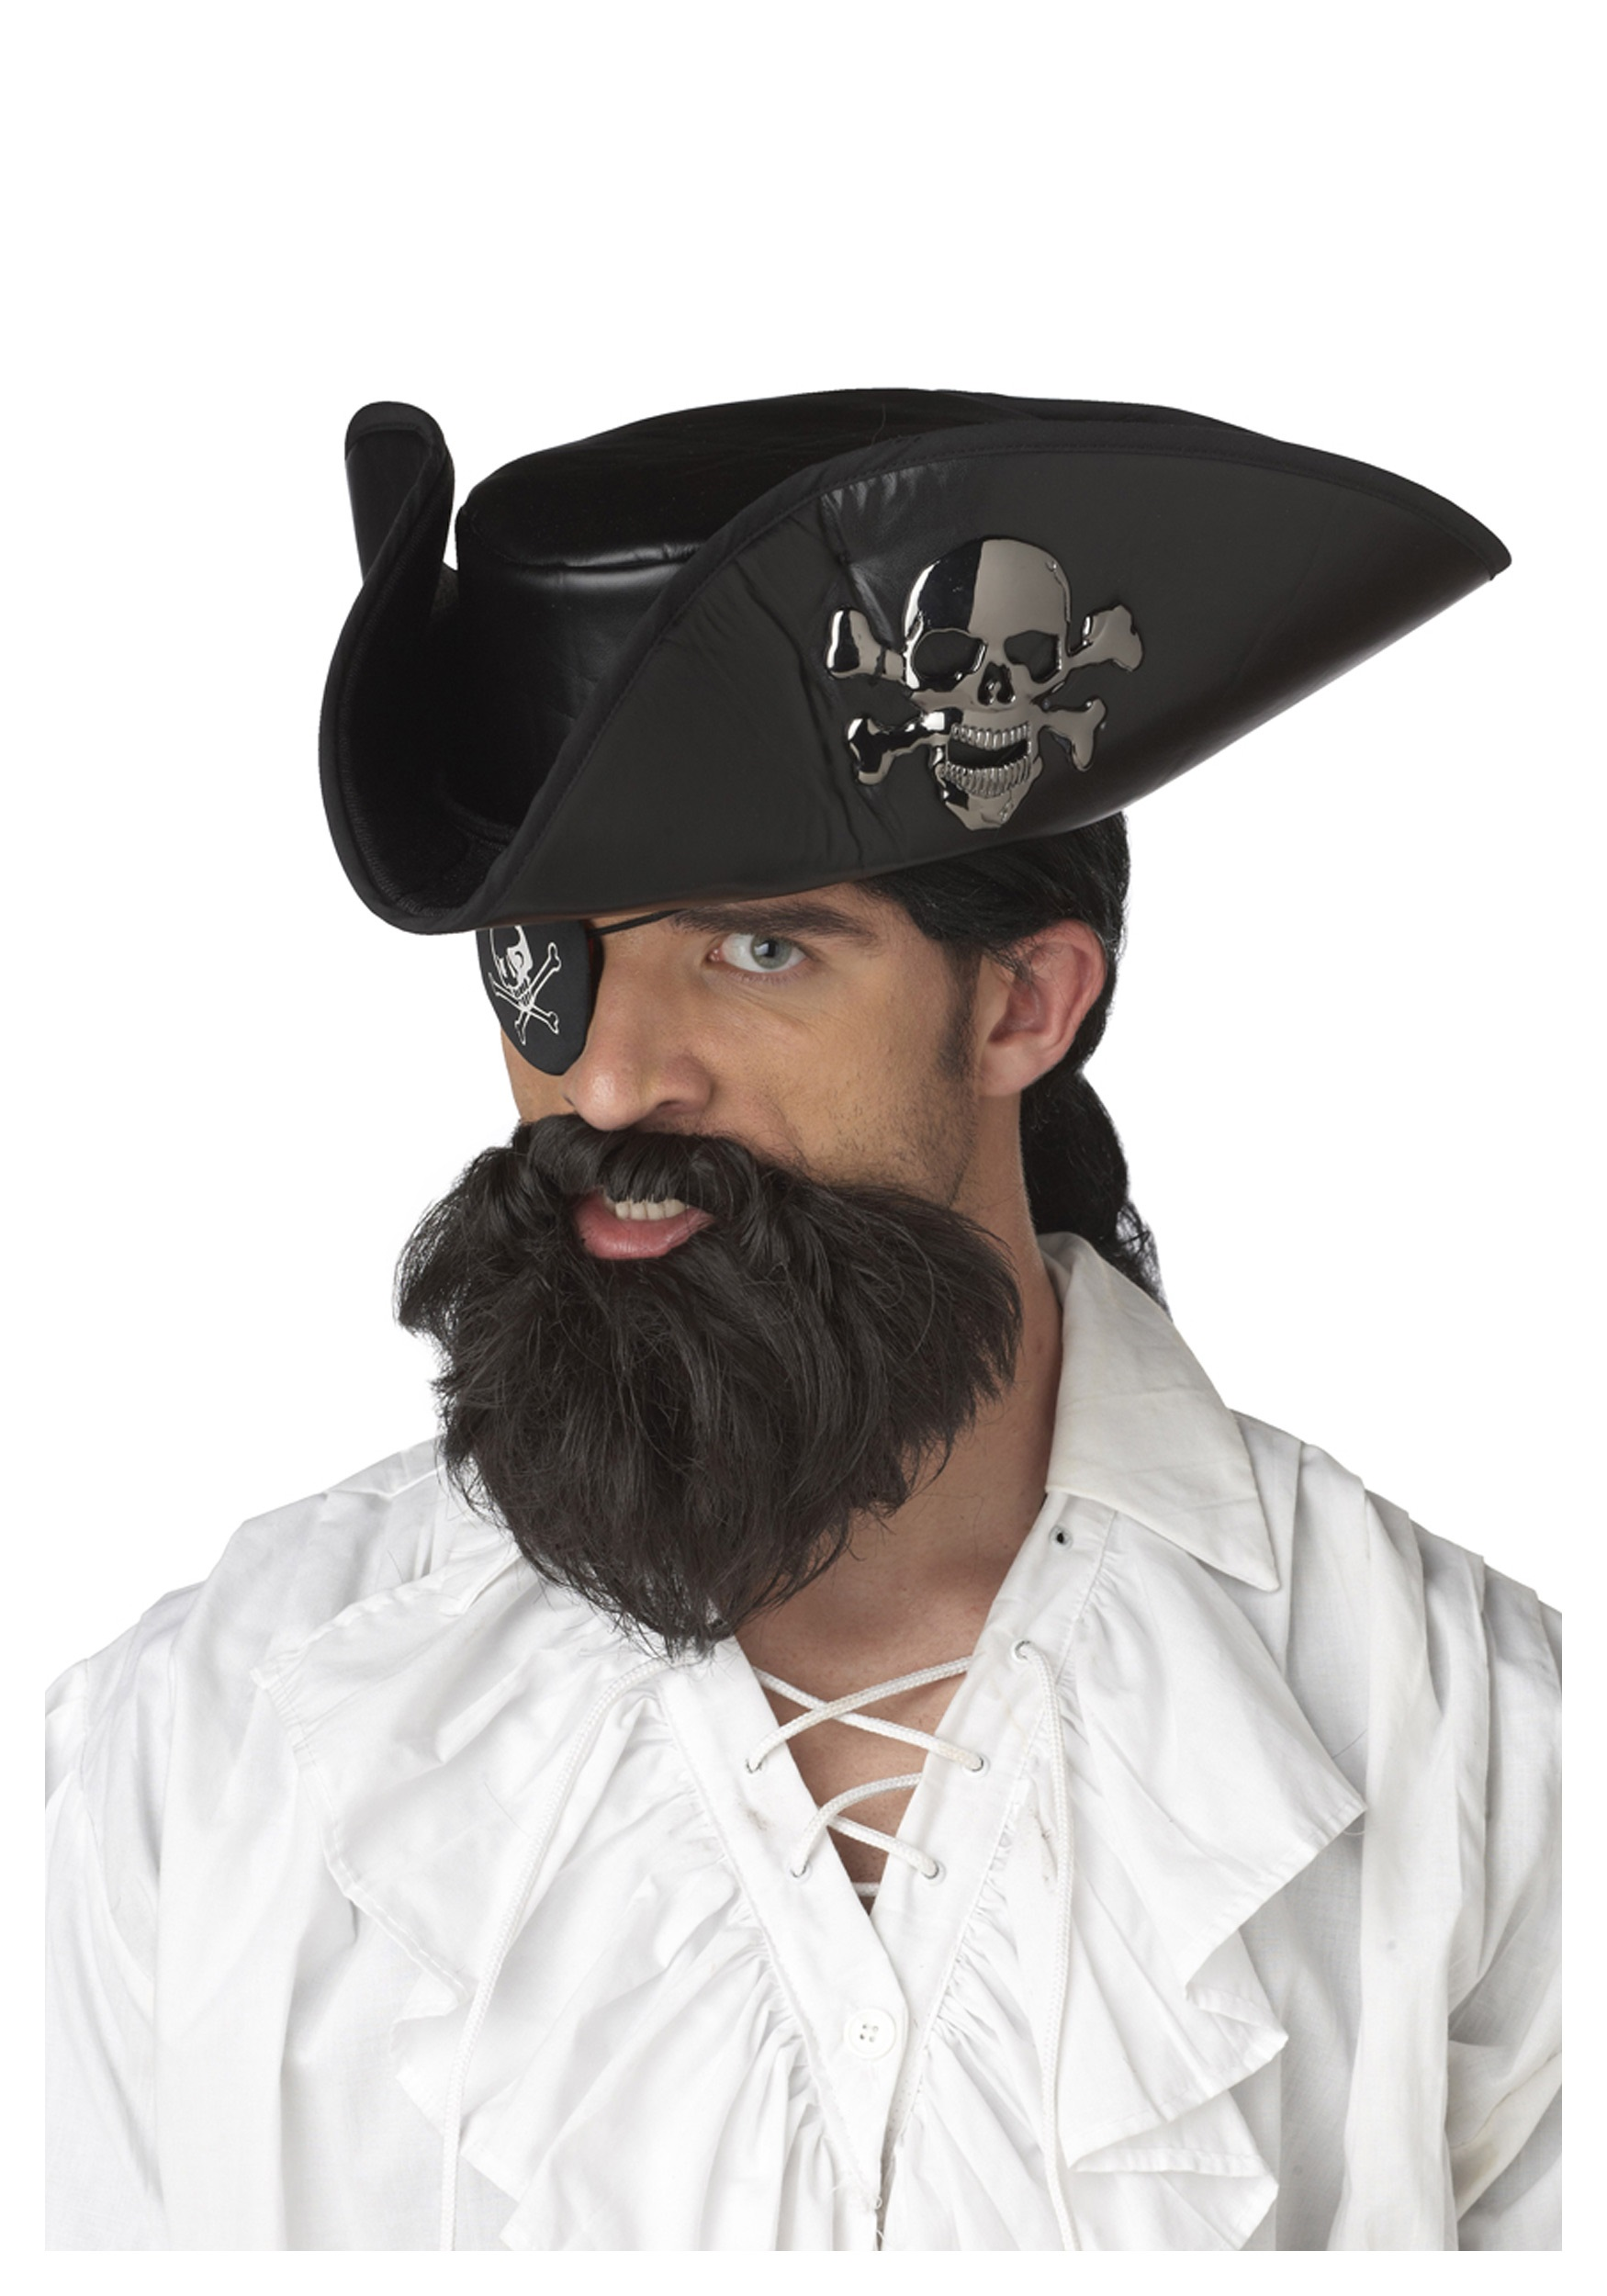 607730f5454 Blackbeard Pirate Beard - Pirate Costume Accessories